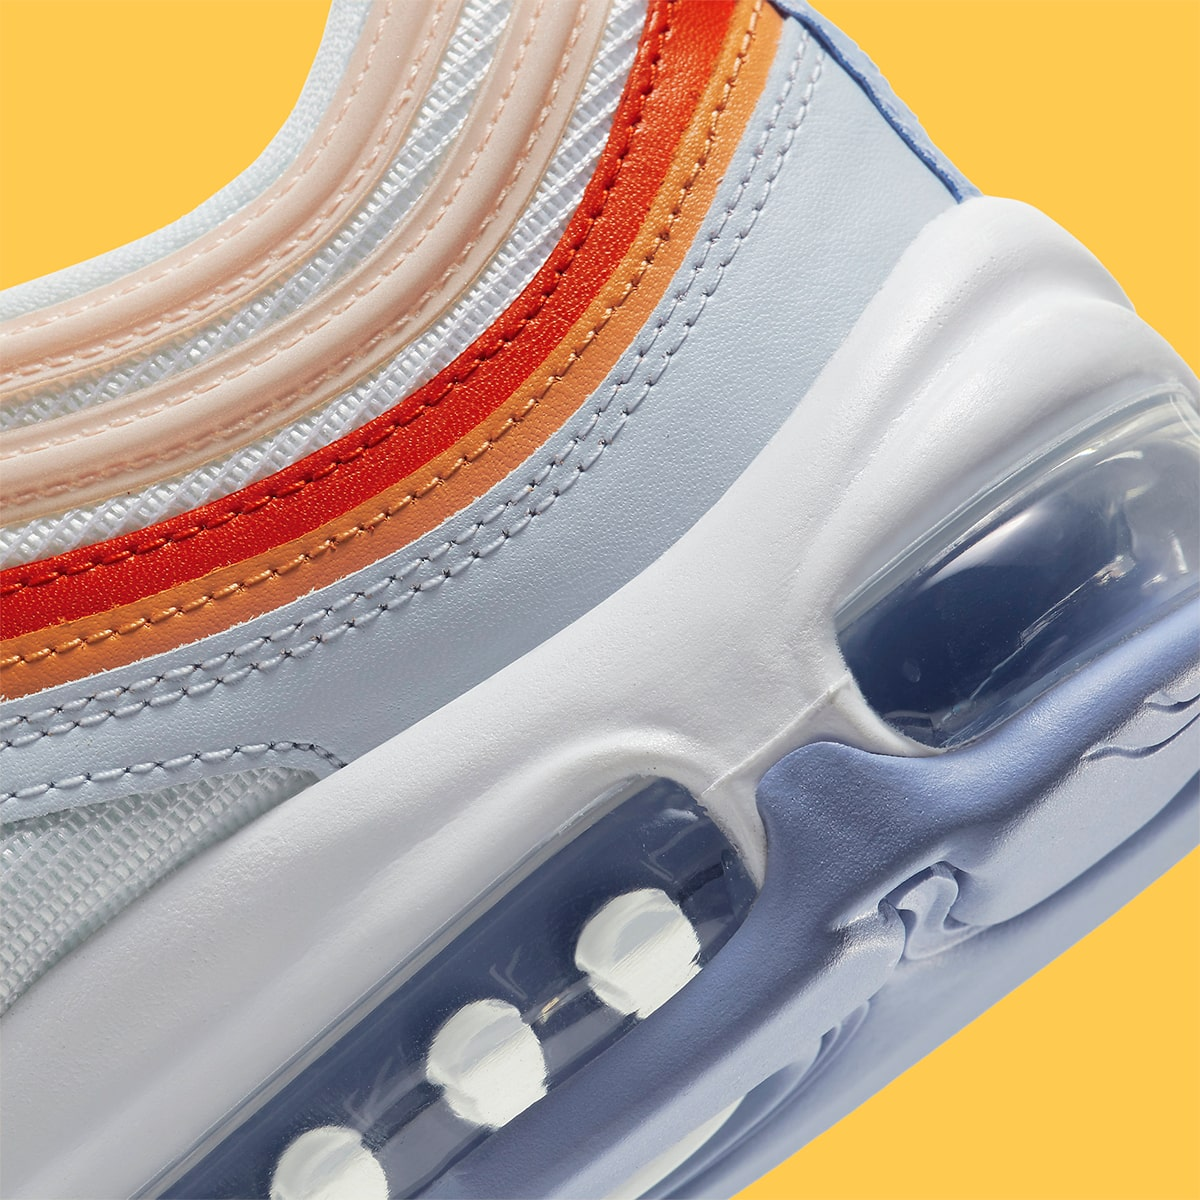 nike air max 97 white pink lavender red oragne cw5588 001 release date info 8